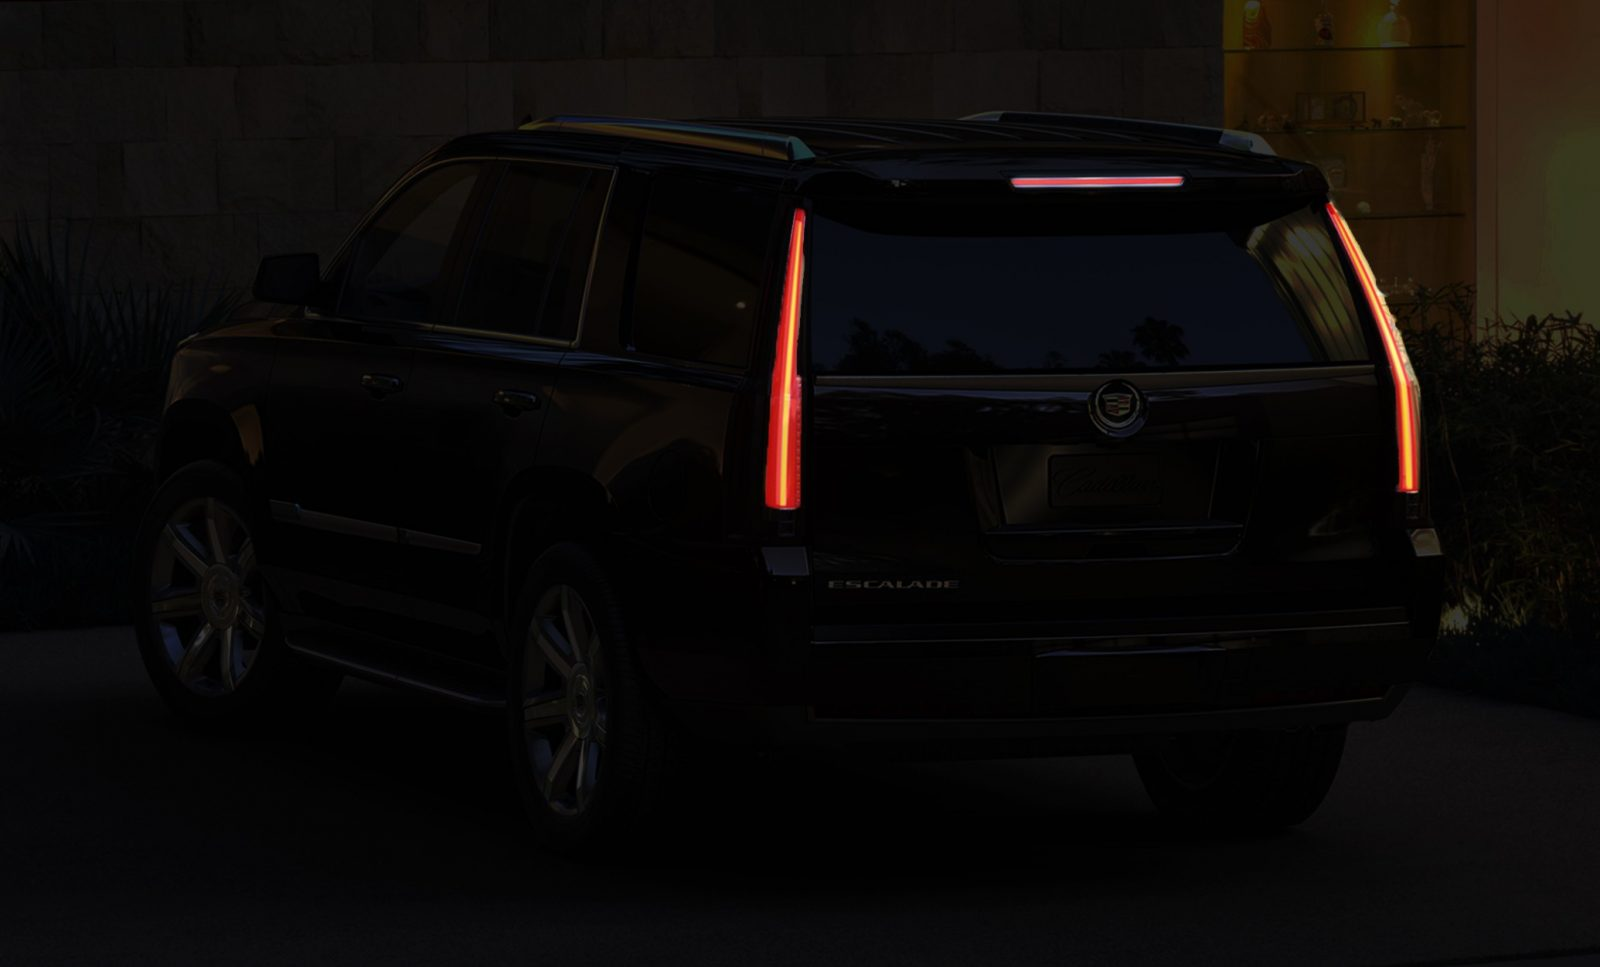 2015 Cadillac Escalade In-Depth Review + Mega Galleries36